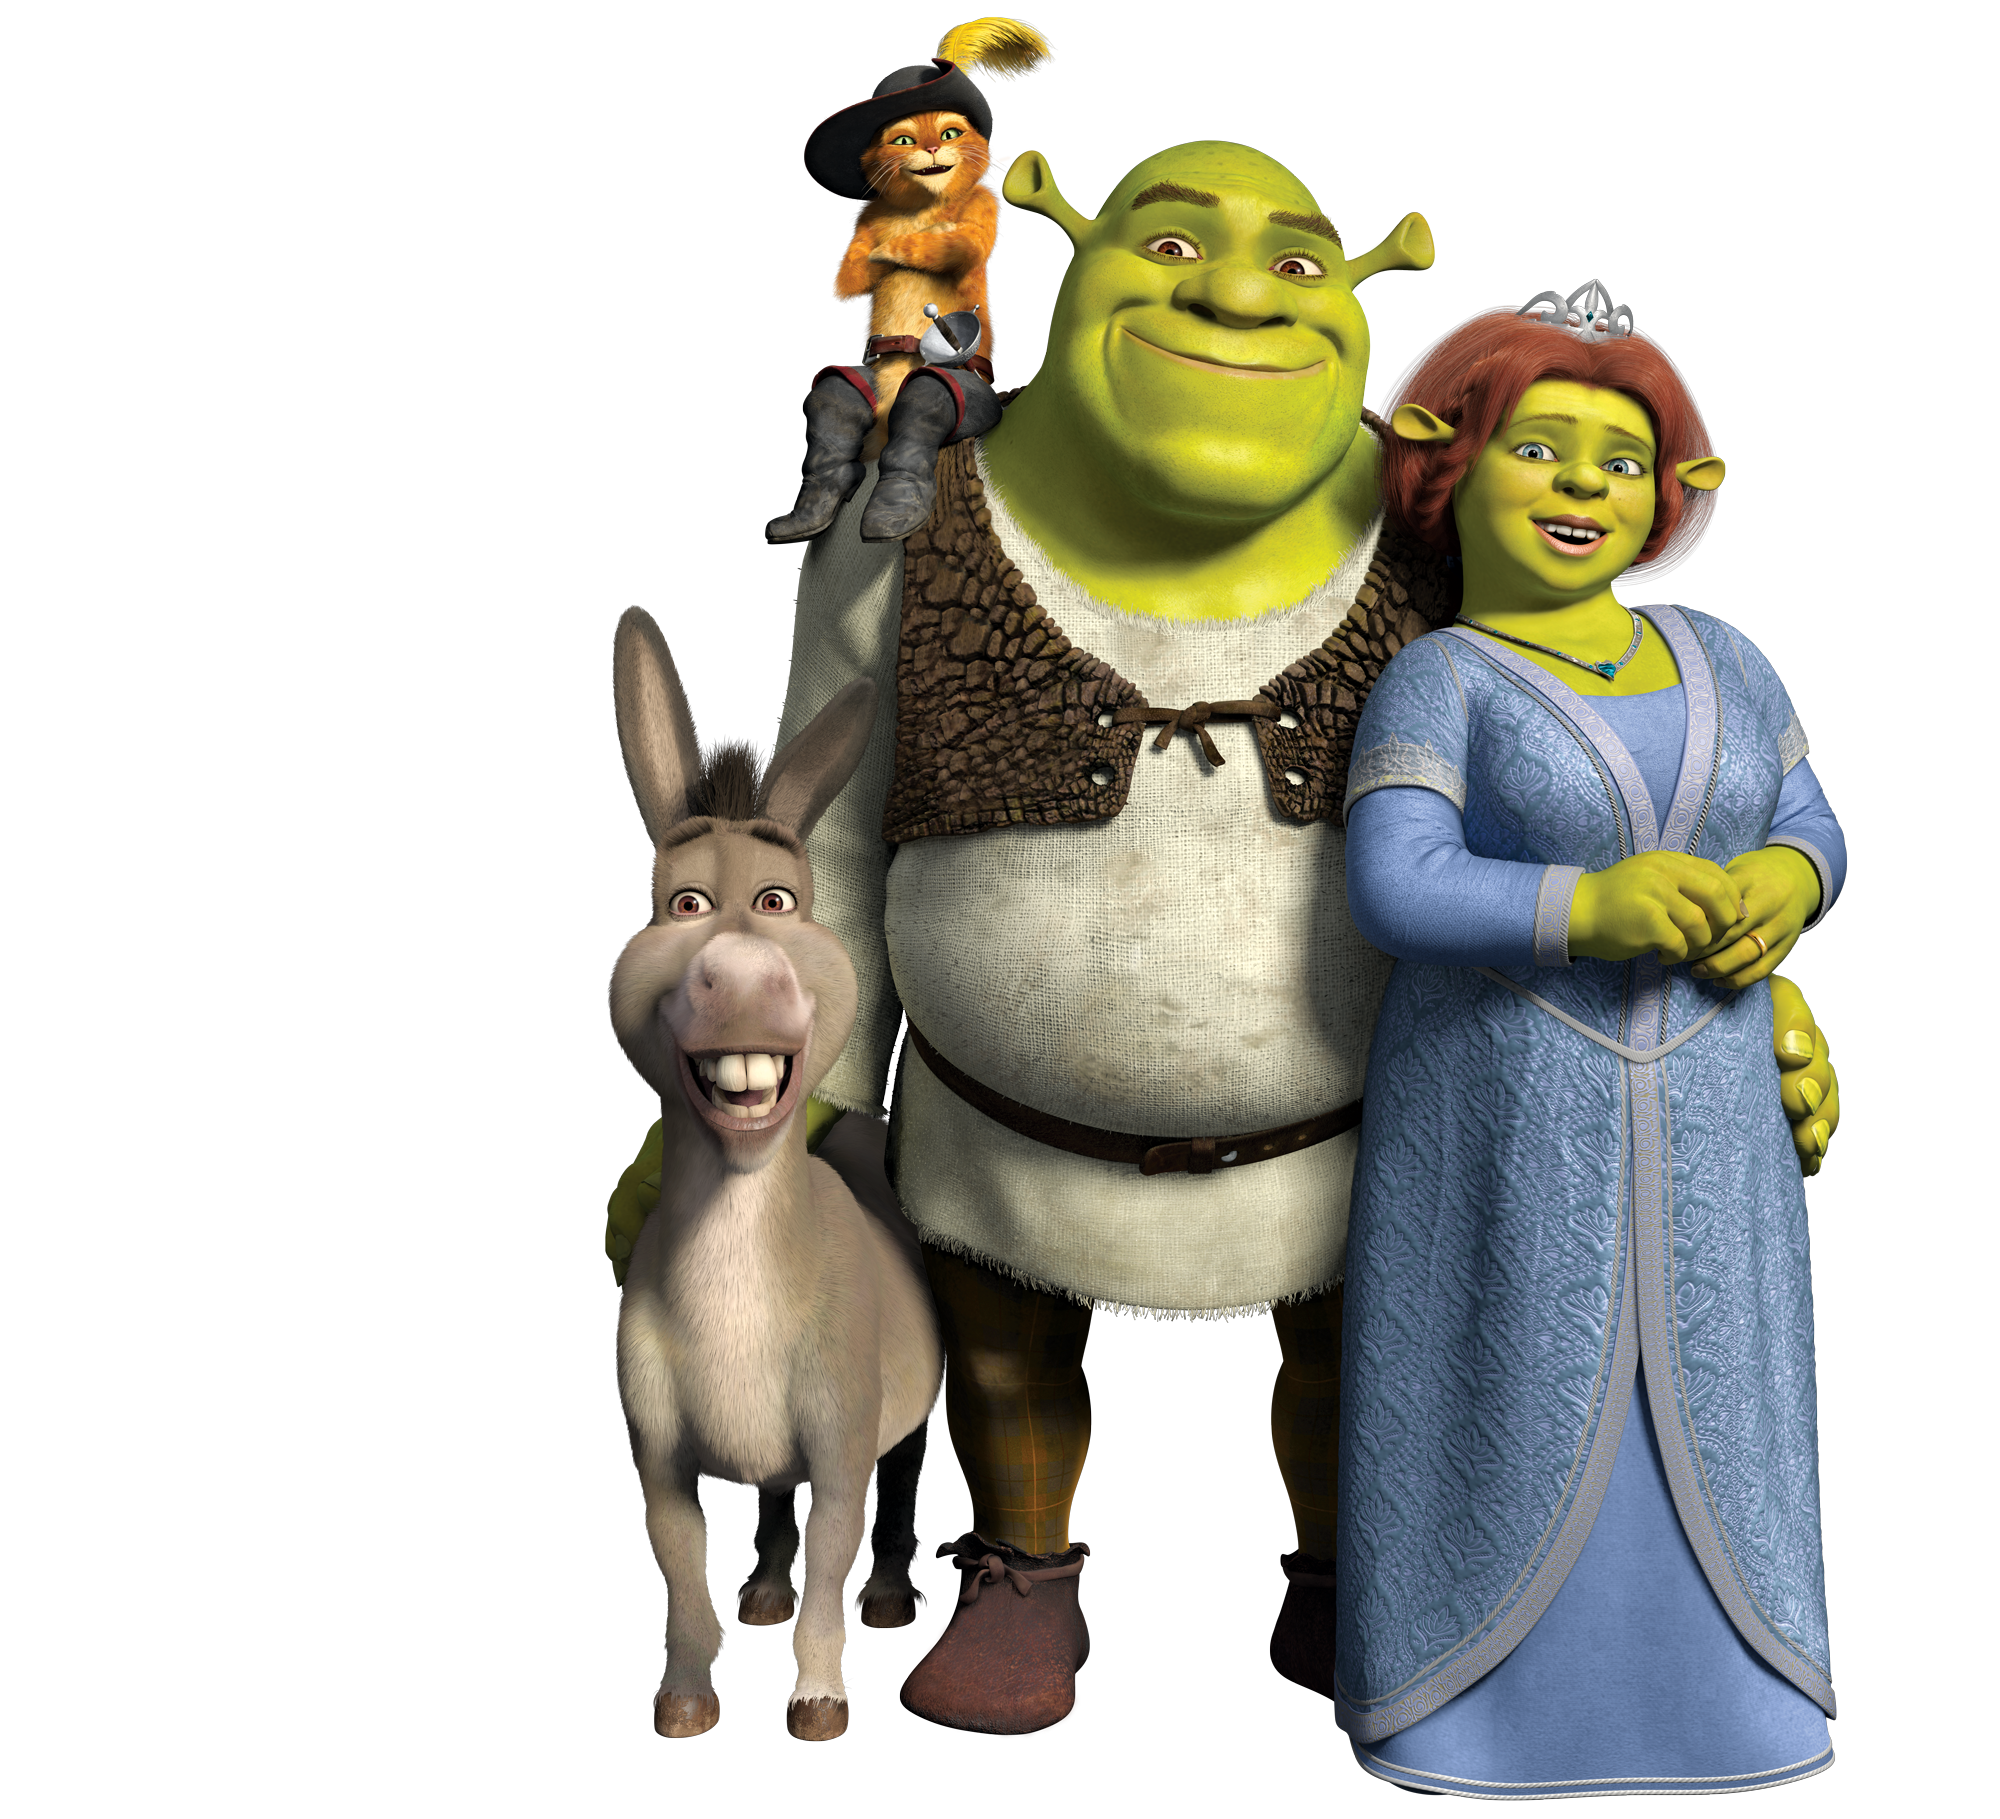 shrek 1 movie summary Shrek is grumpy, smelly and ugly ogre, living peacefully in a swamp one night, he suddenly finds his land has been squatted by a mass of fairy-tale creatures.